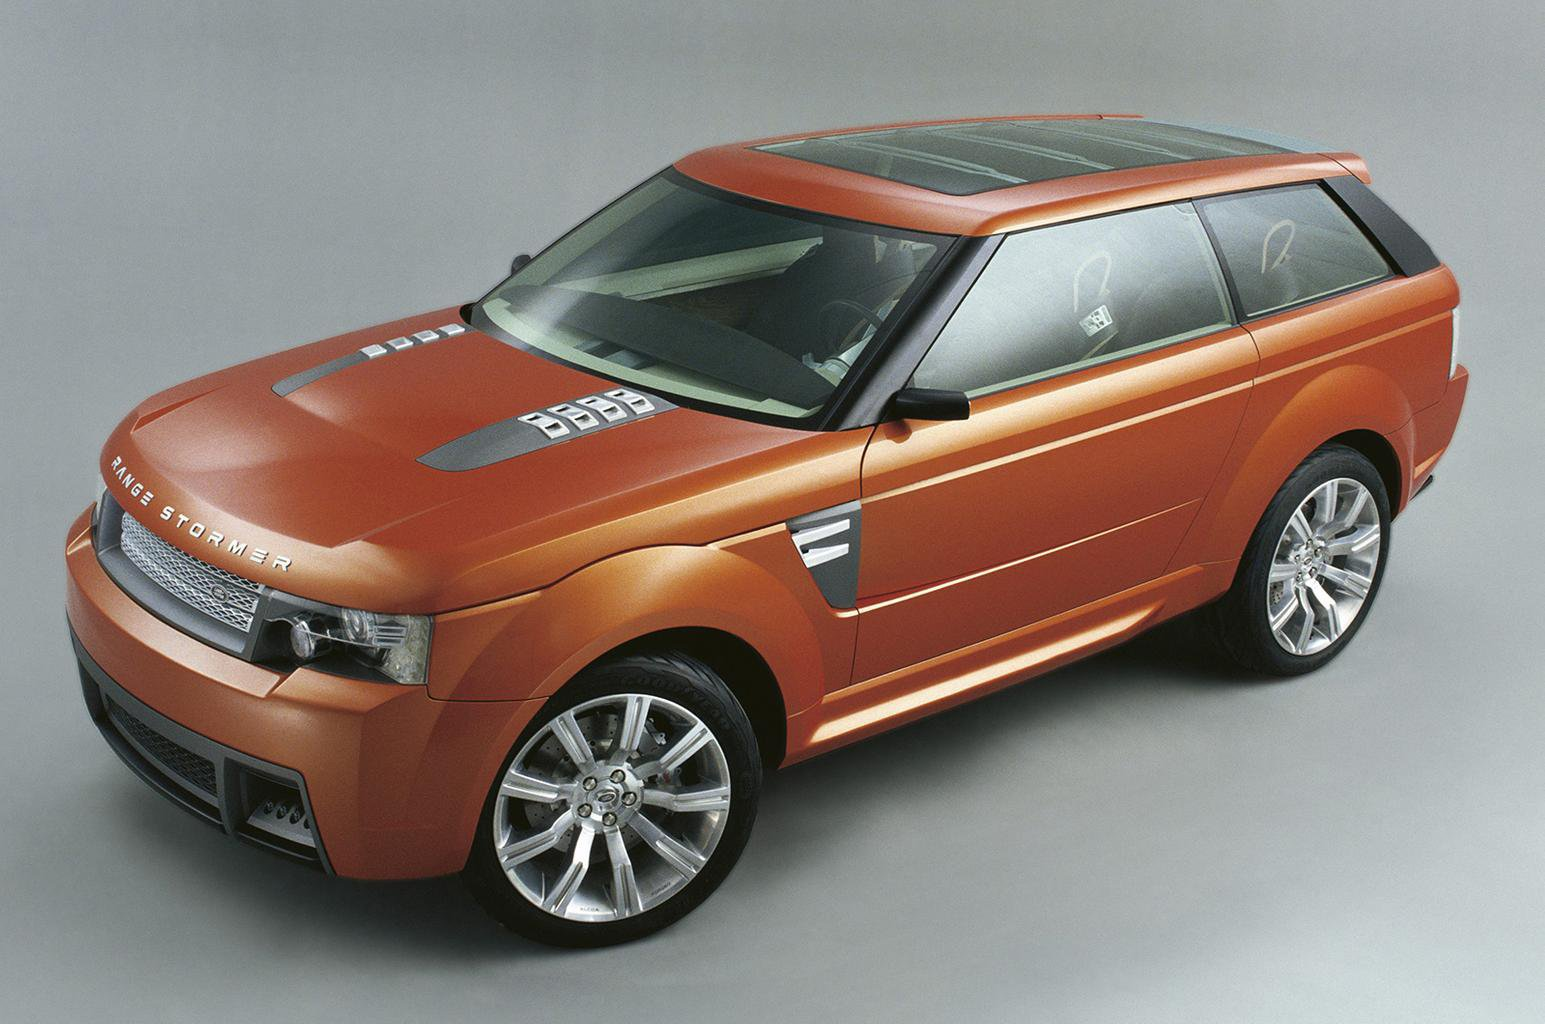 New two-door Range Rover Coupé previewed